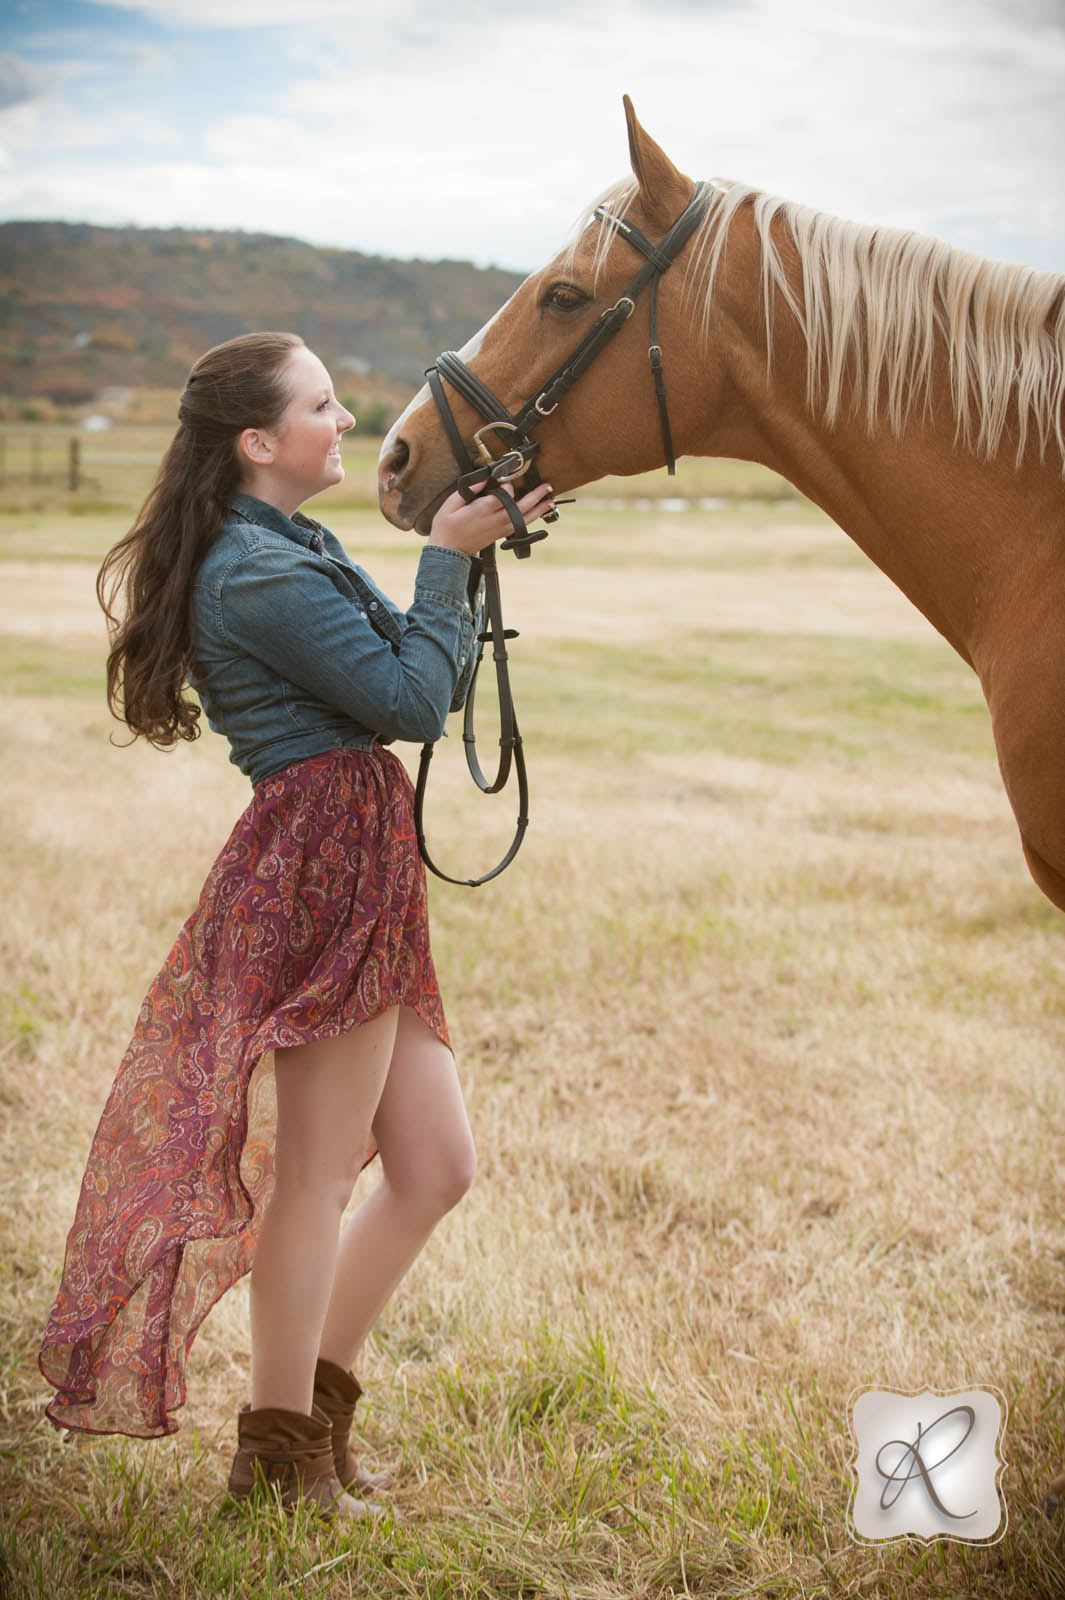 Emma's Senior Pictures With Her Horse